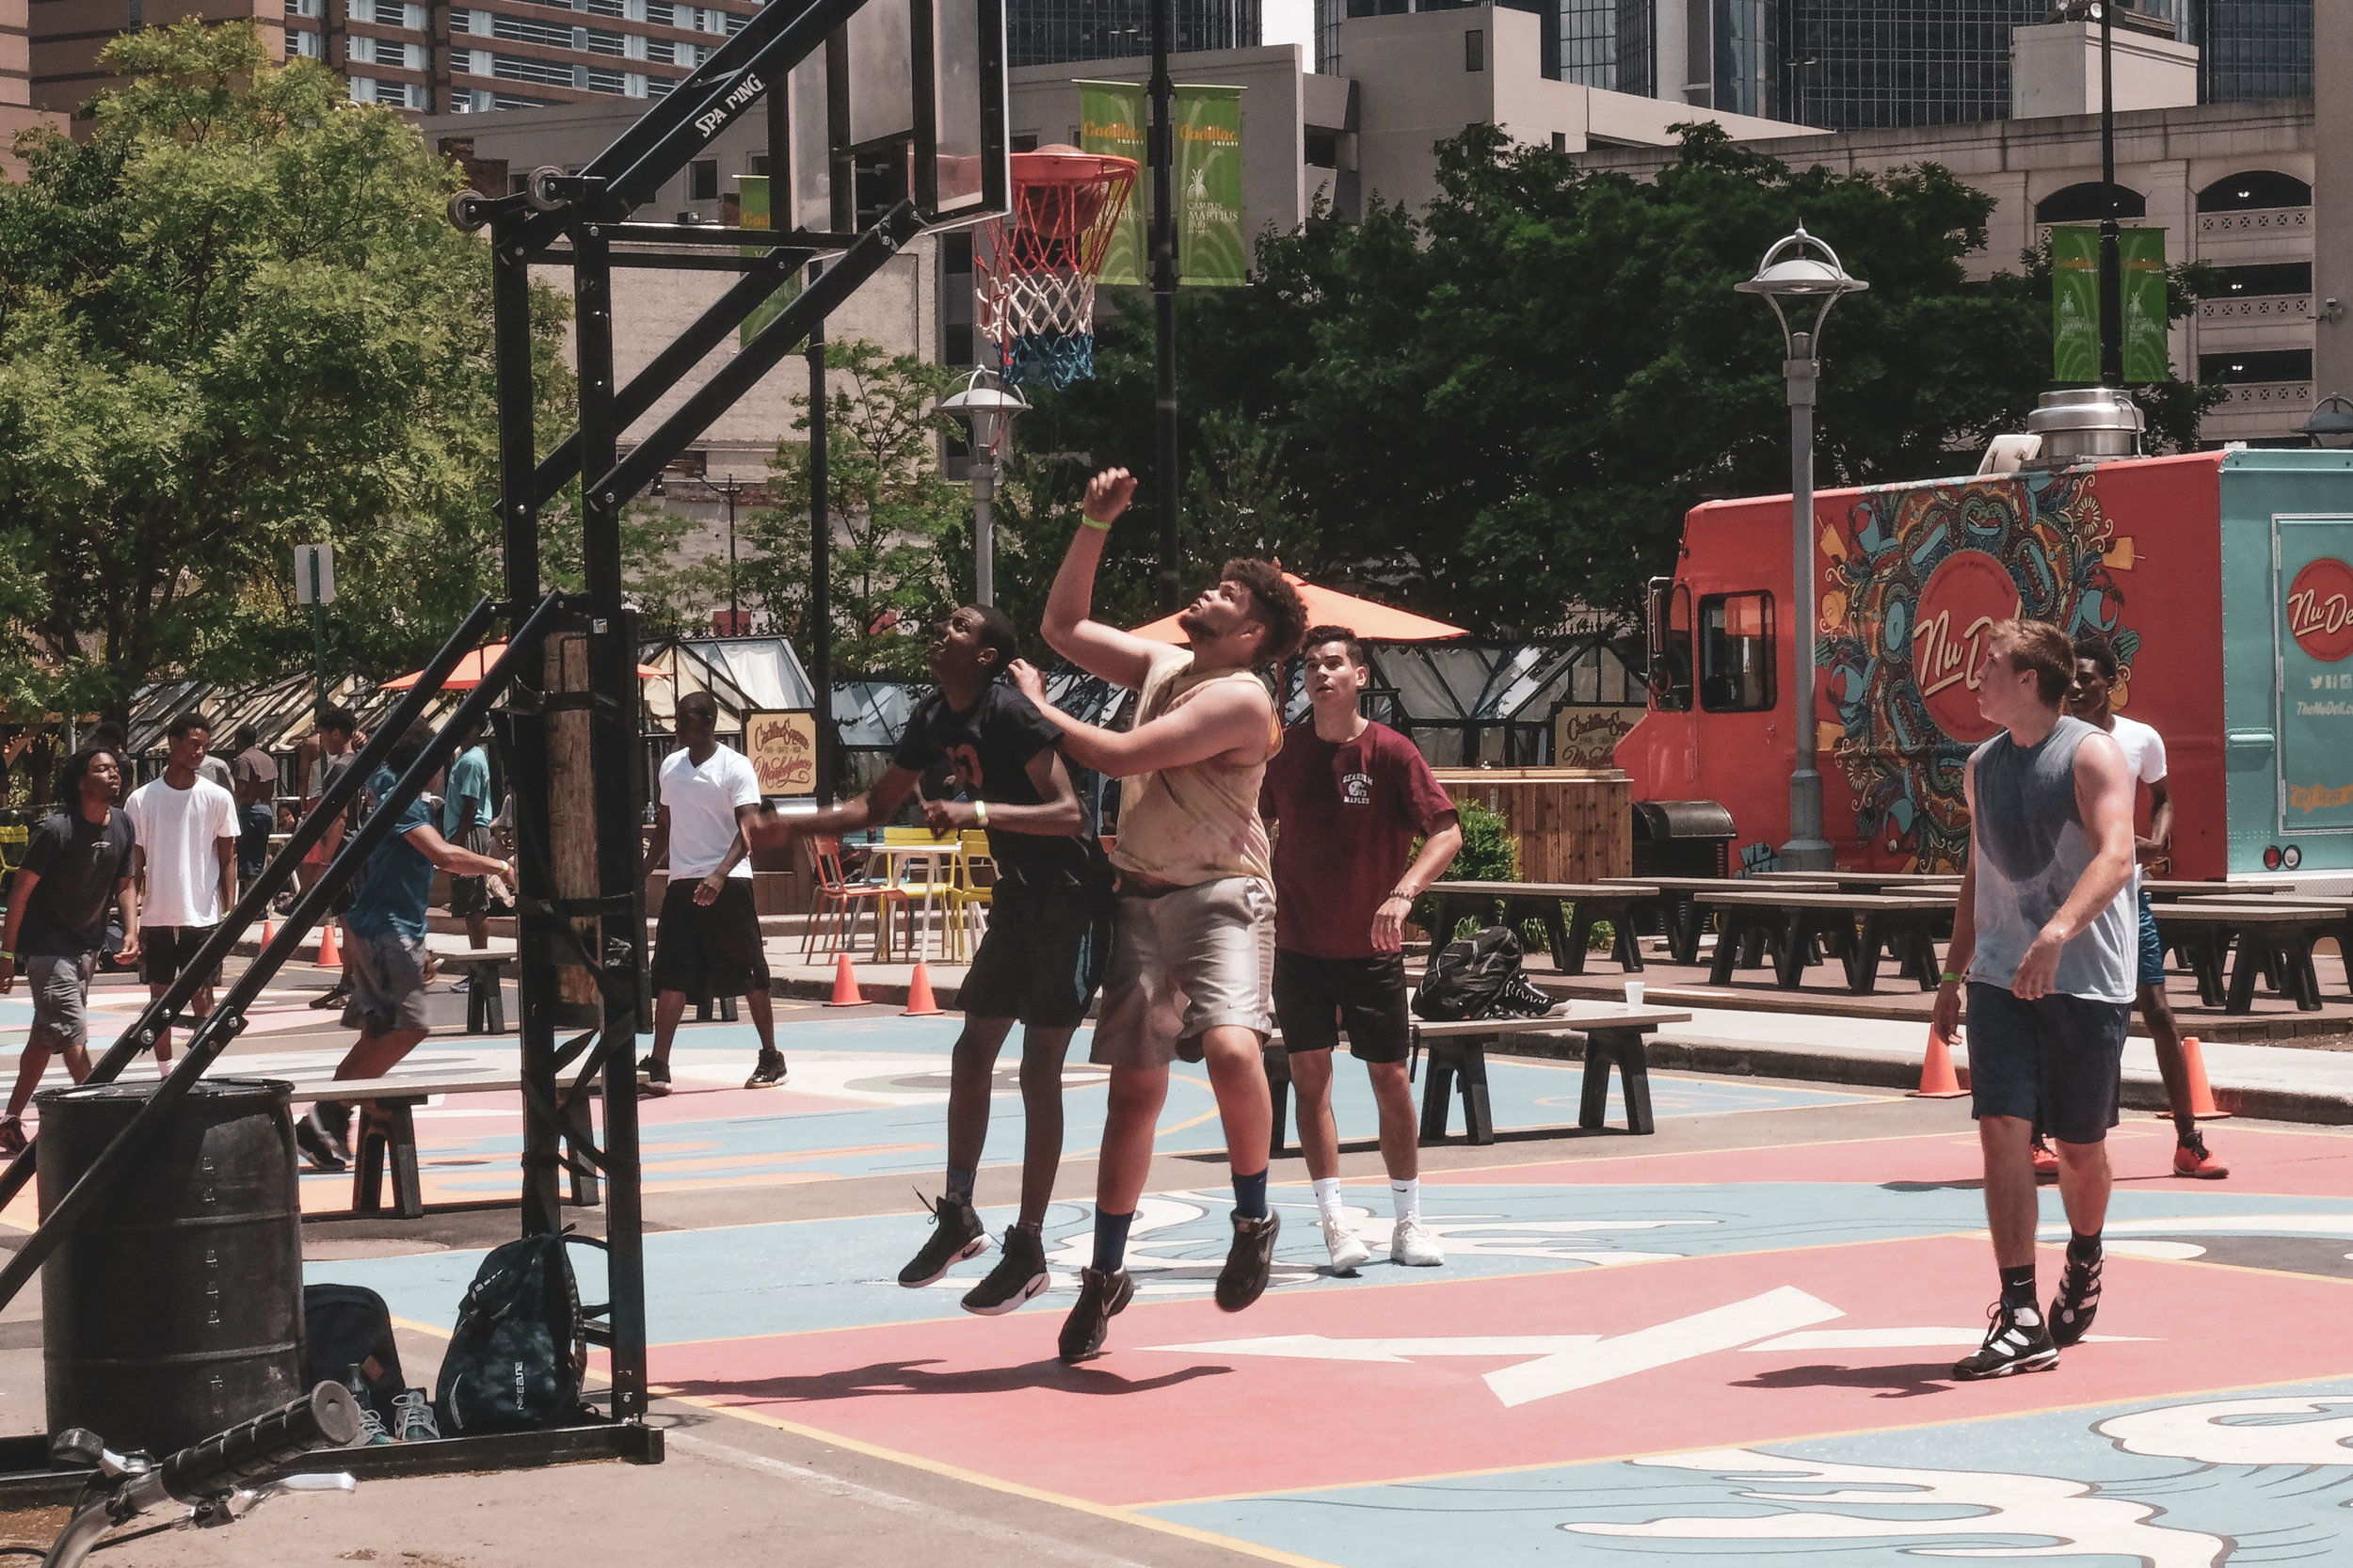 This strip of basketball courts were right next to pop up shops and outdoor seating surrounded by public parks and fountains. It was beautiful.